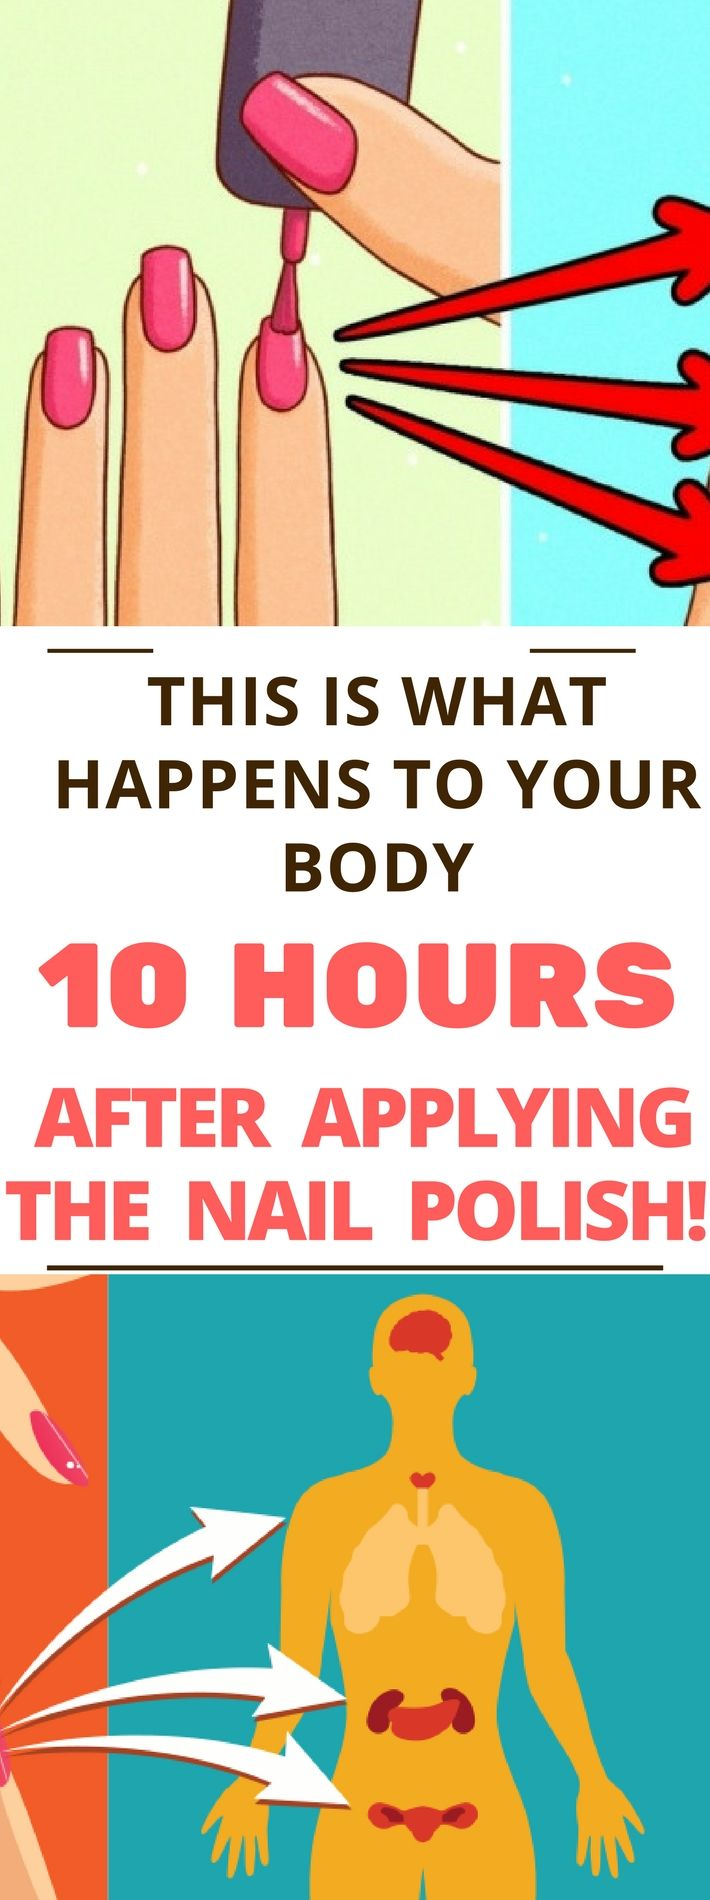 THIS IS WHAT HAPPENS TO YOUR BODY 10 HOURS AFTER APPLYING THE NAIL POLISH. Read this.